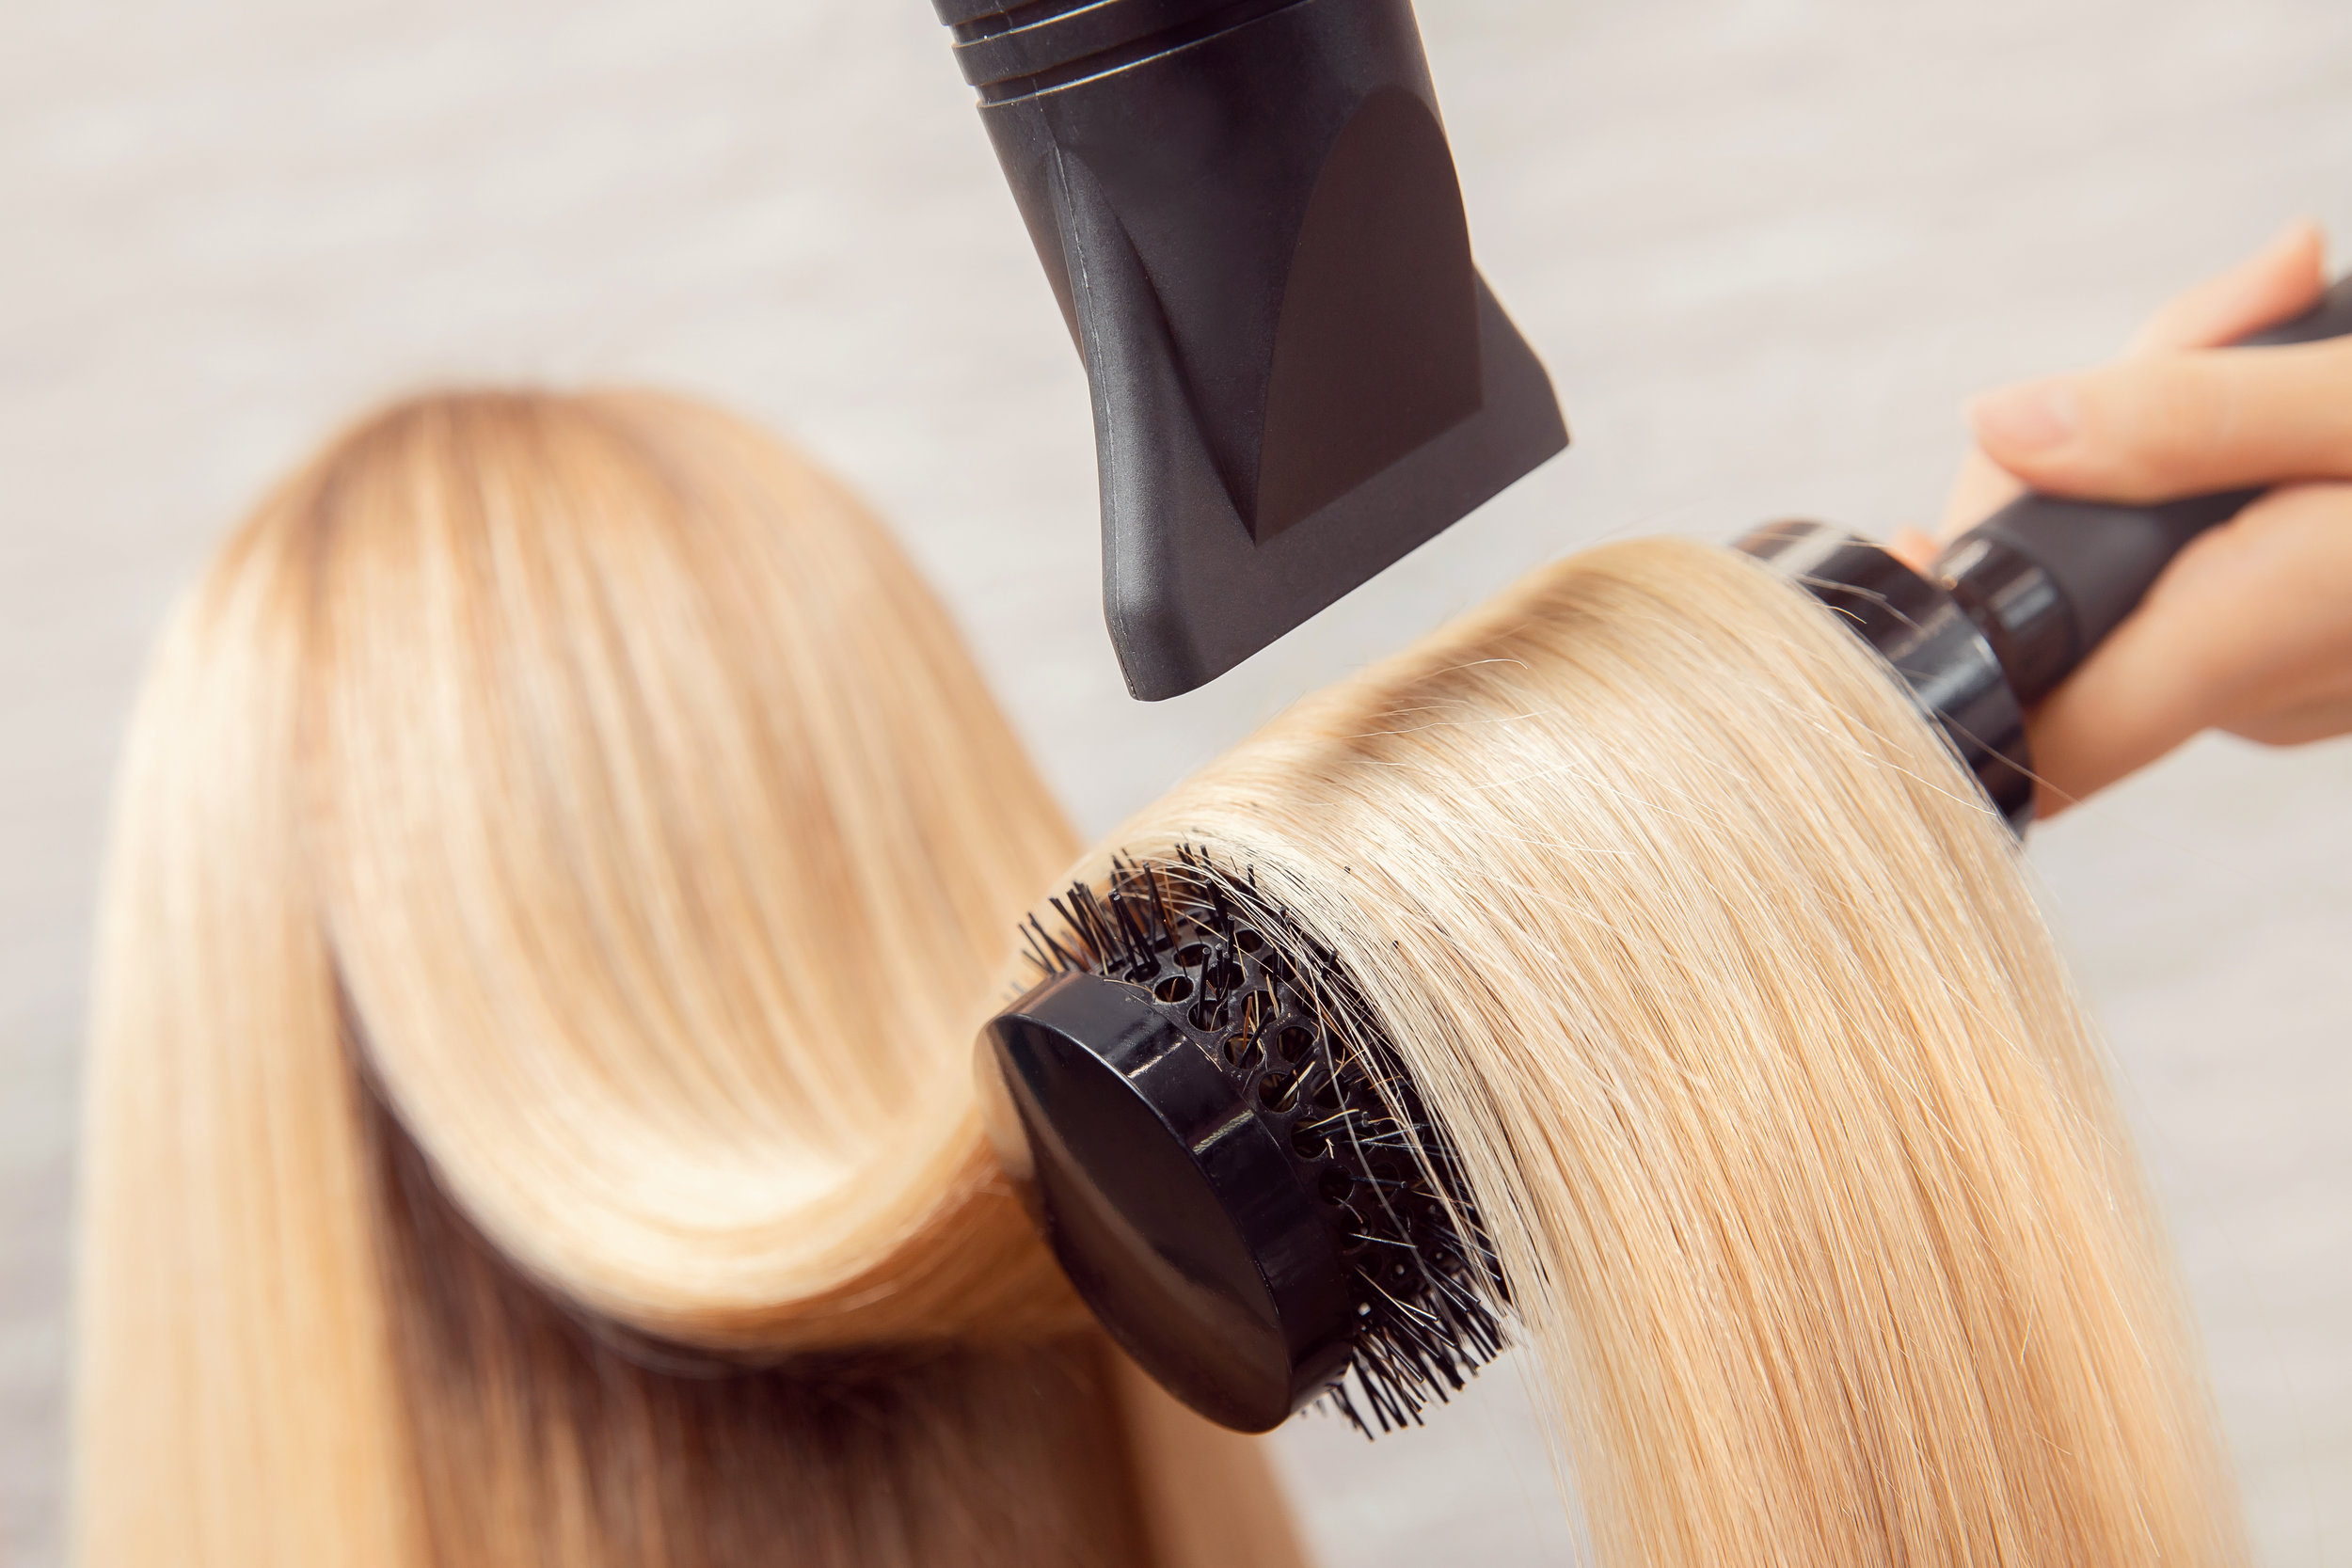 BLOW DRY - BLOW DRY FROM $65 - $150BLOW DRY WITH EXTENSIONS $95CHECK OUT OUR WEEKLY PROMOTIONS FROM $50 PER WEEK